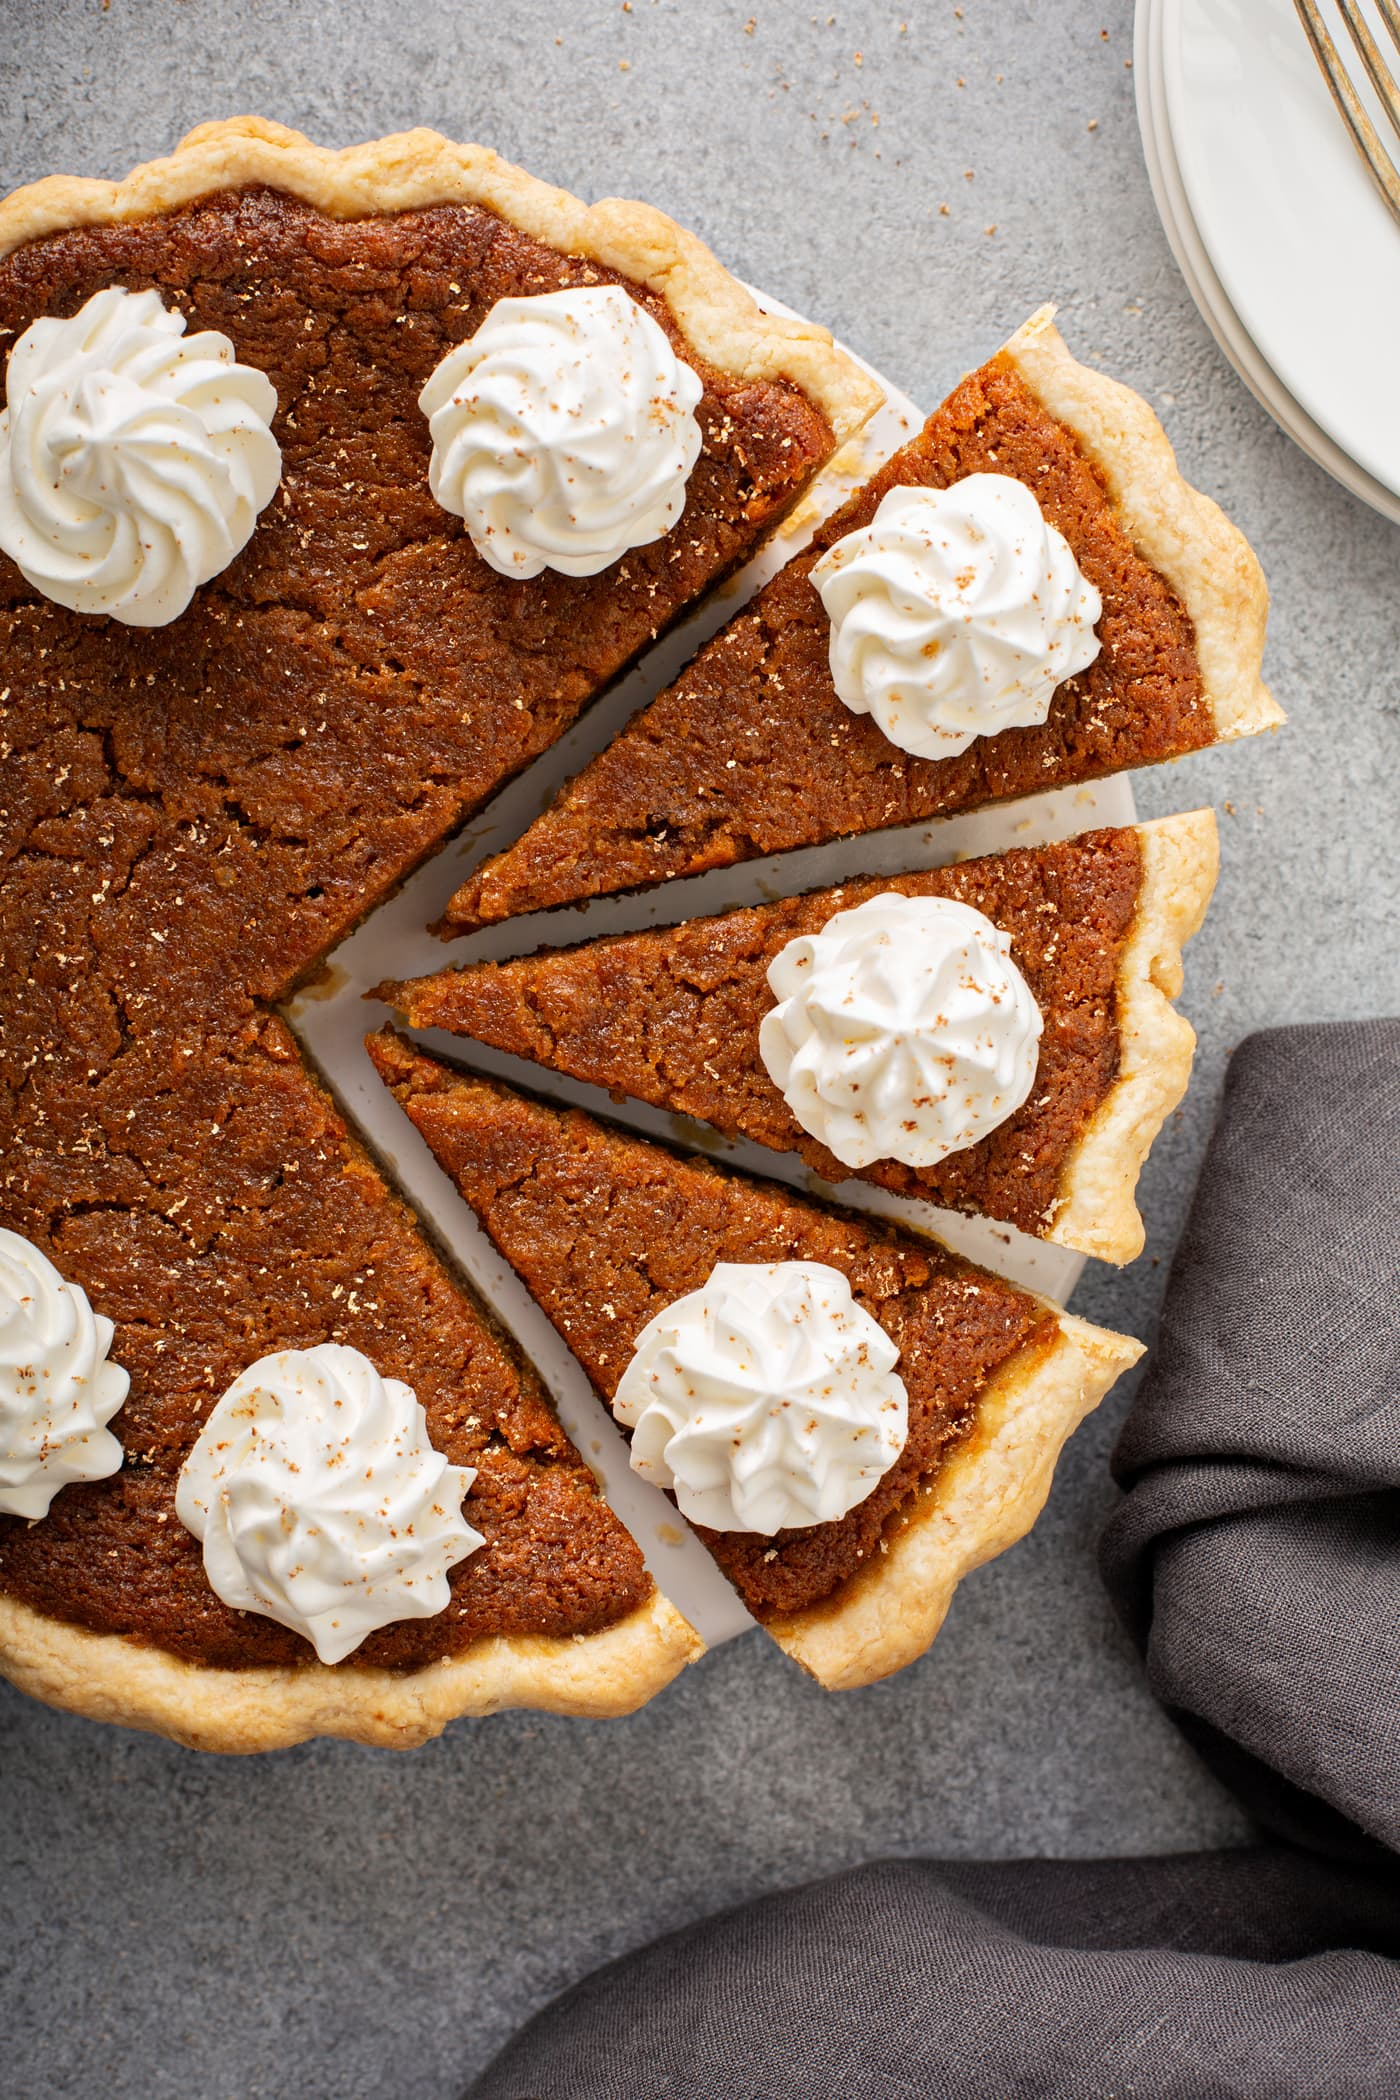 A photo of a whole sweet potato pie with dollops of whipped cream on top and three slices pulled out from the whole pie.